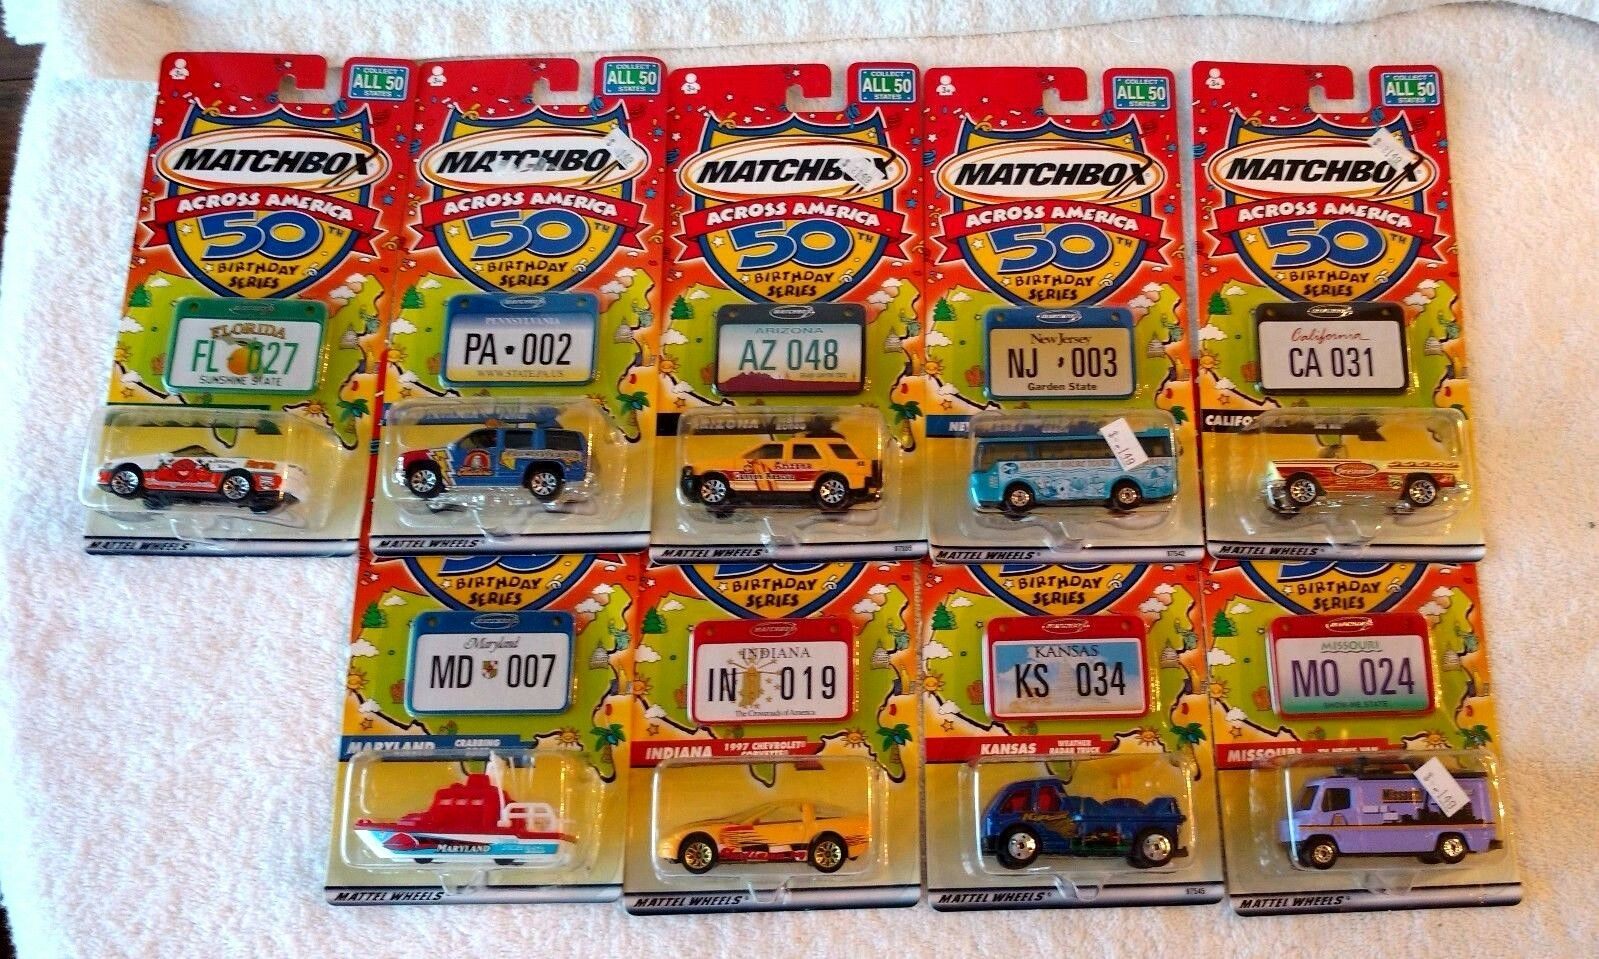 Matchbox Across America 50th Birthday Series Lot of 9 NIP